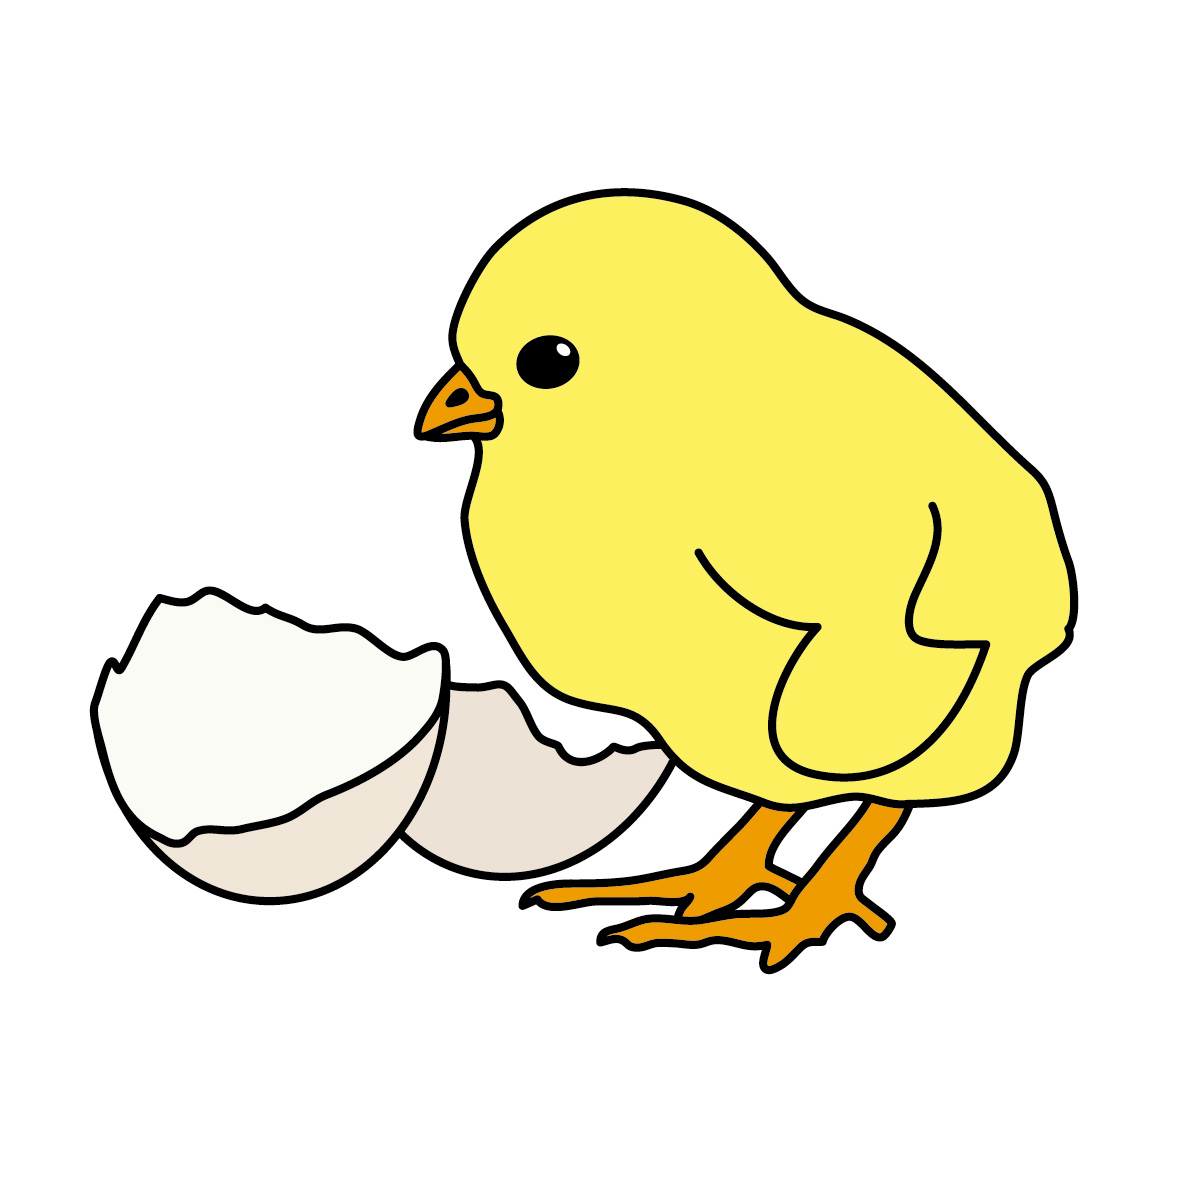 Chick Clipart Lpsk 2-Chick clipart lpsk 2-9